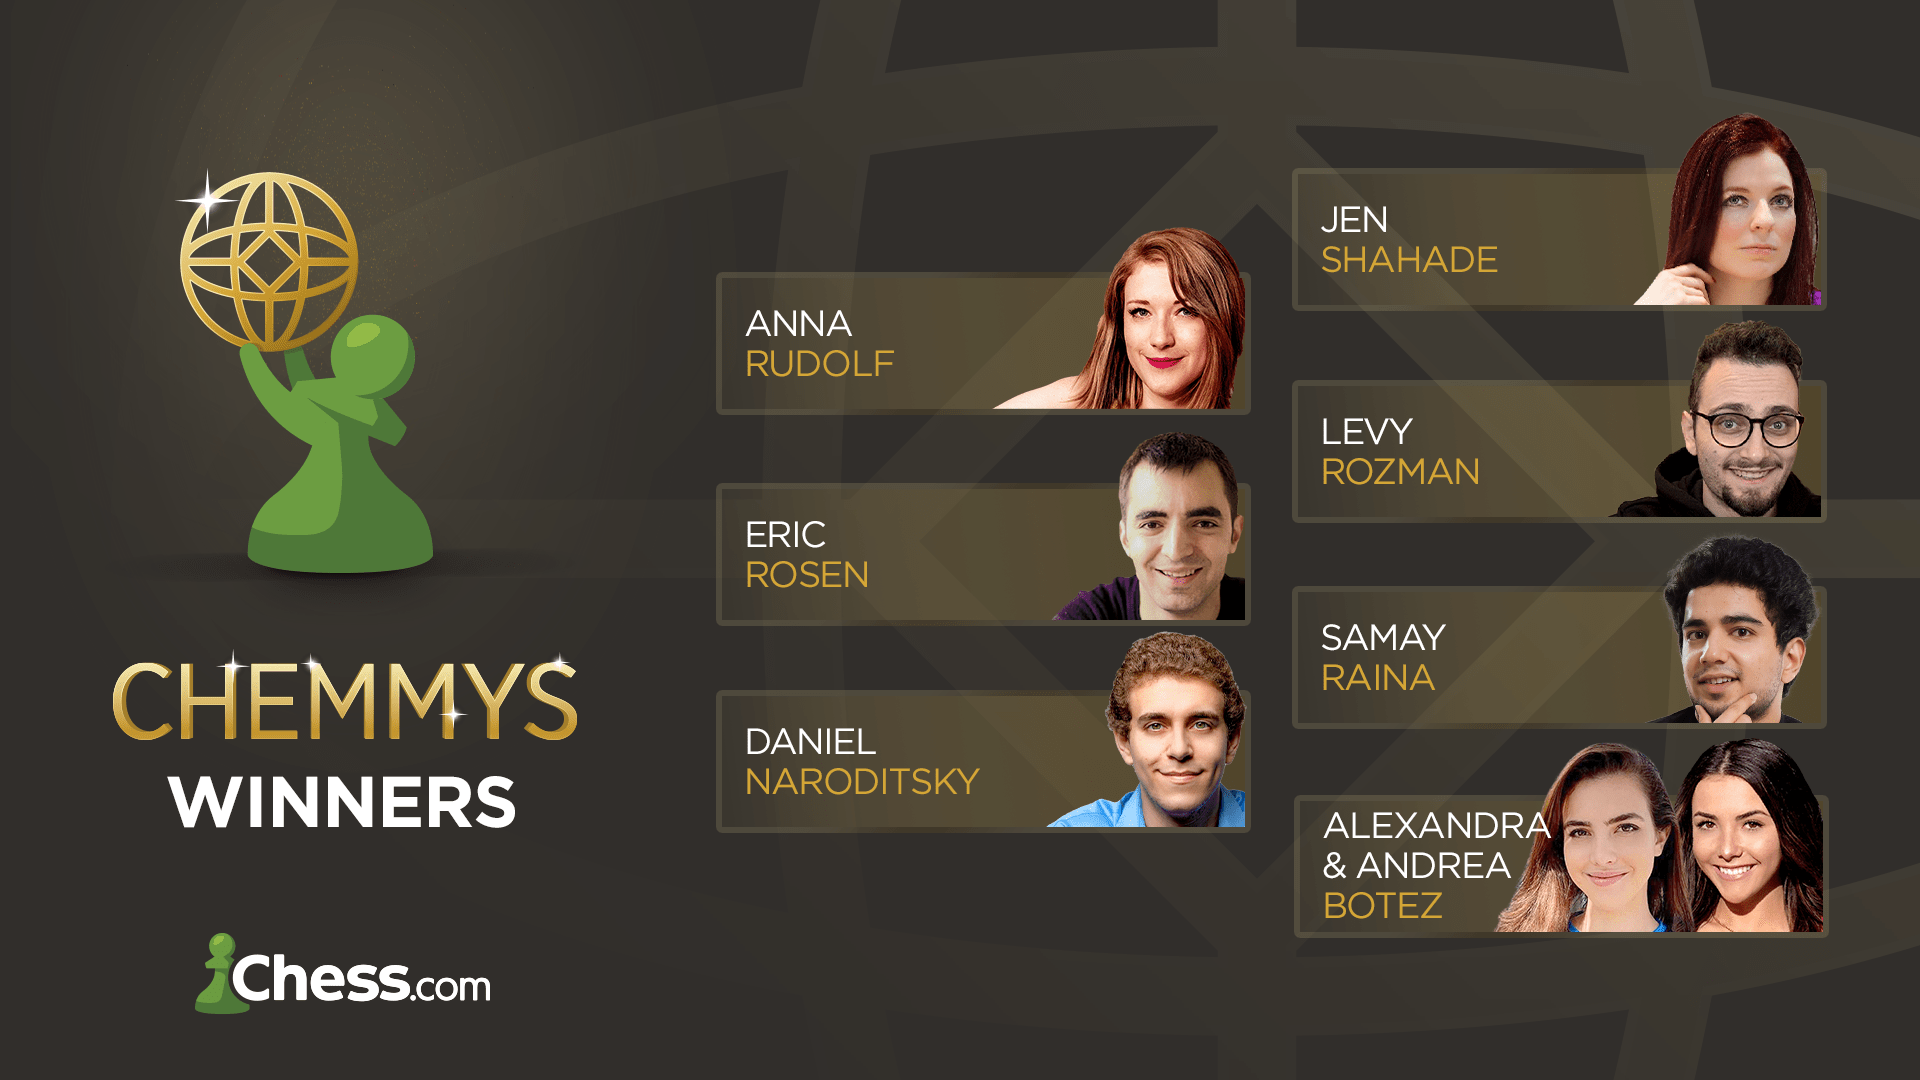 Announcing The Chemmys Winners